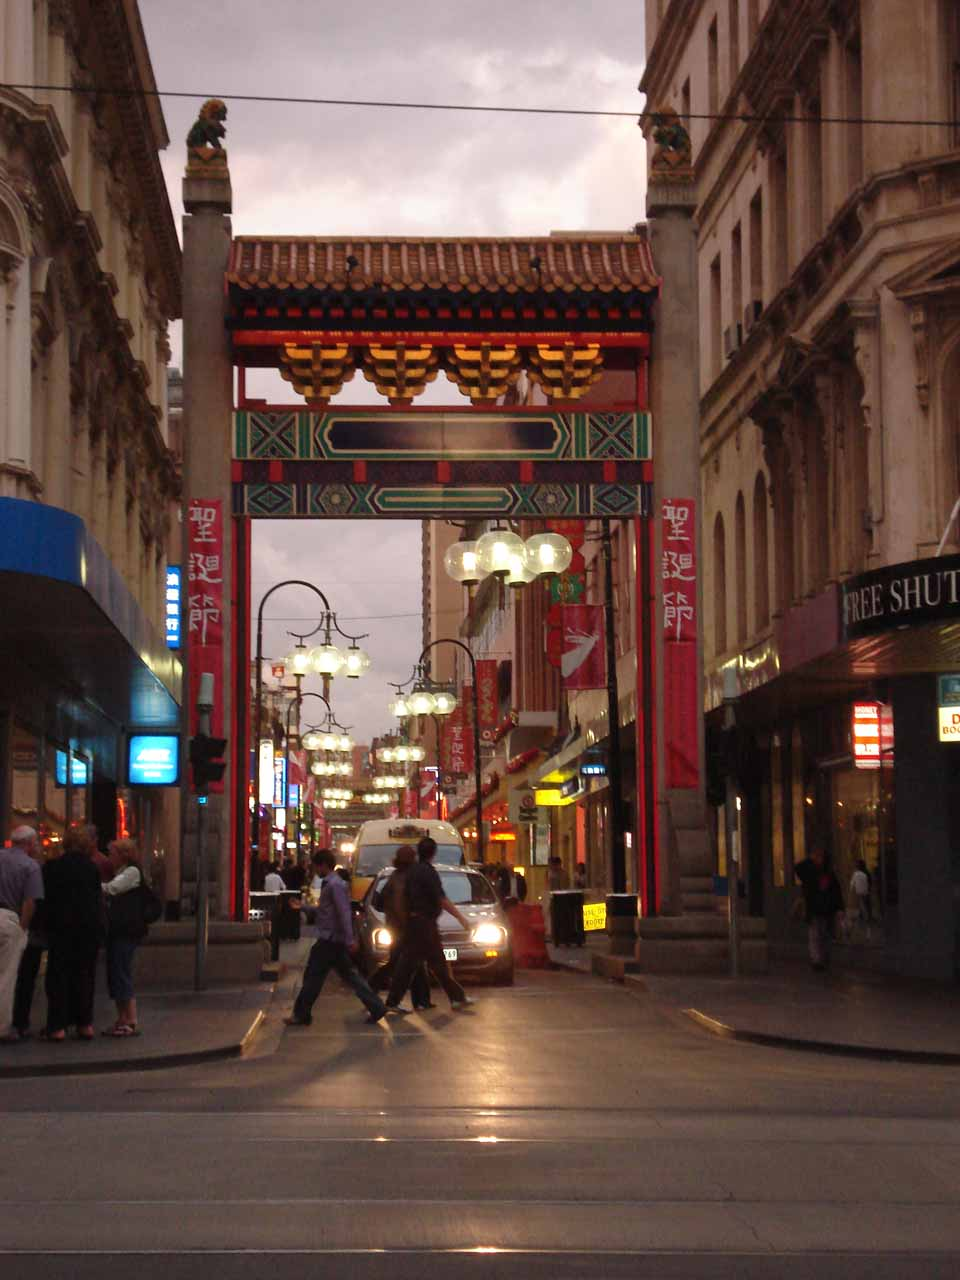 The Chinatown part of Melbourne